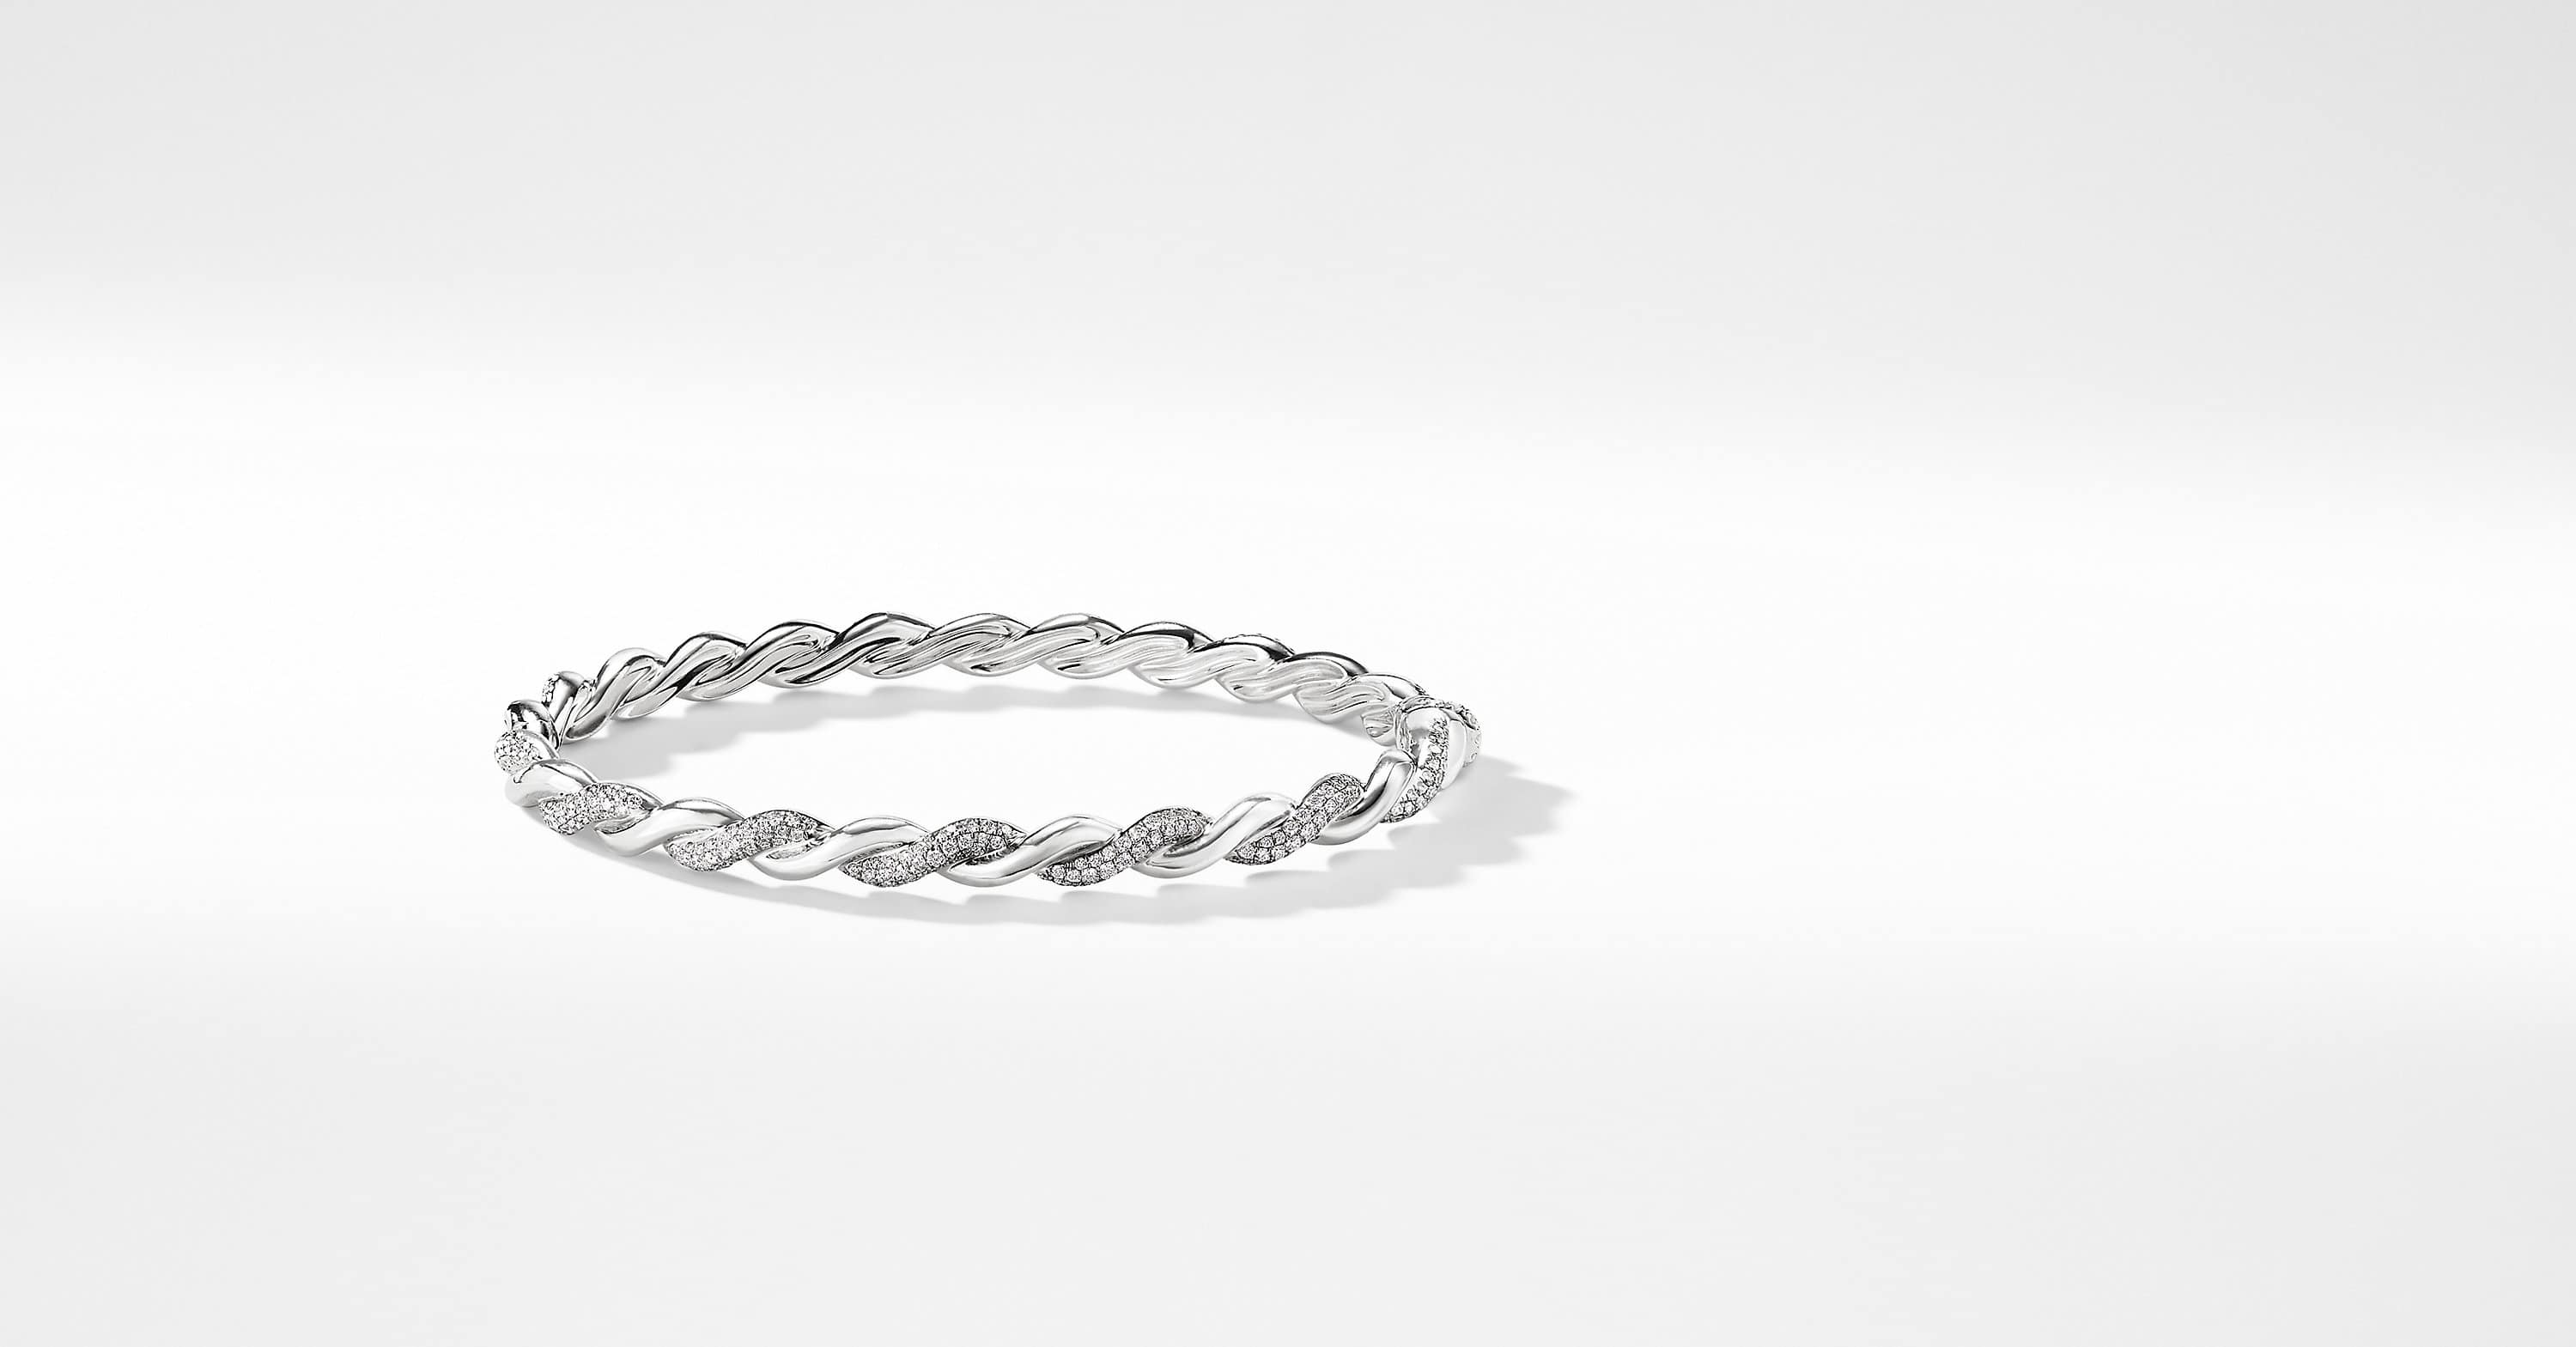 Wisteria Bracelet with Diamonds in White Gold